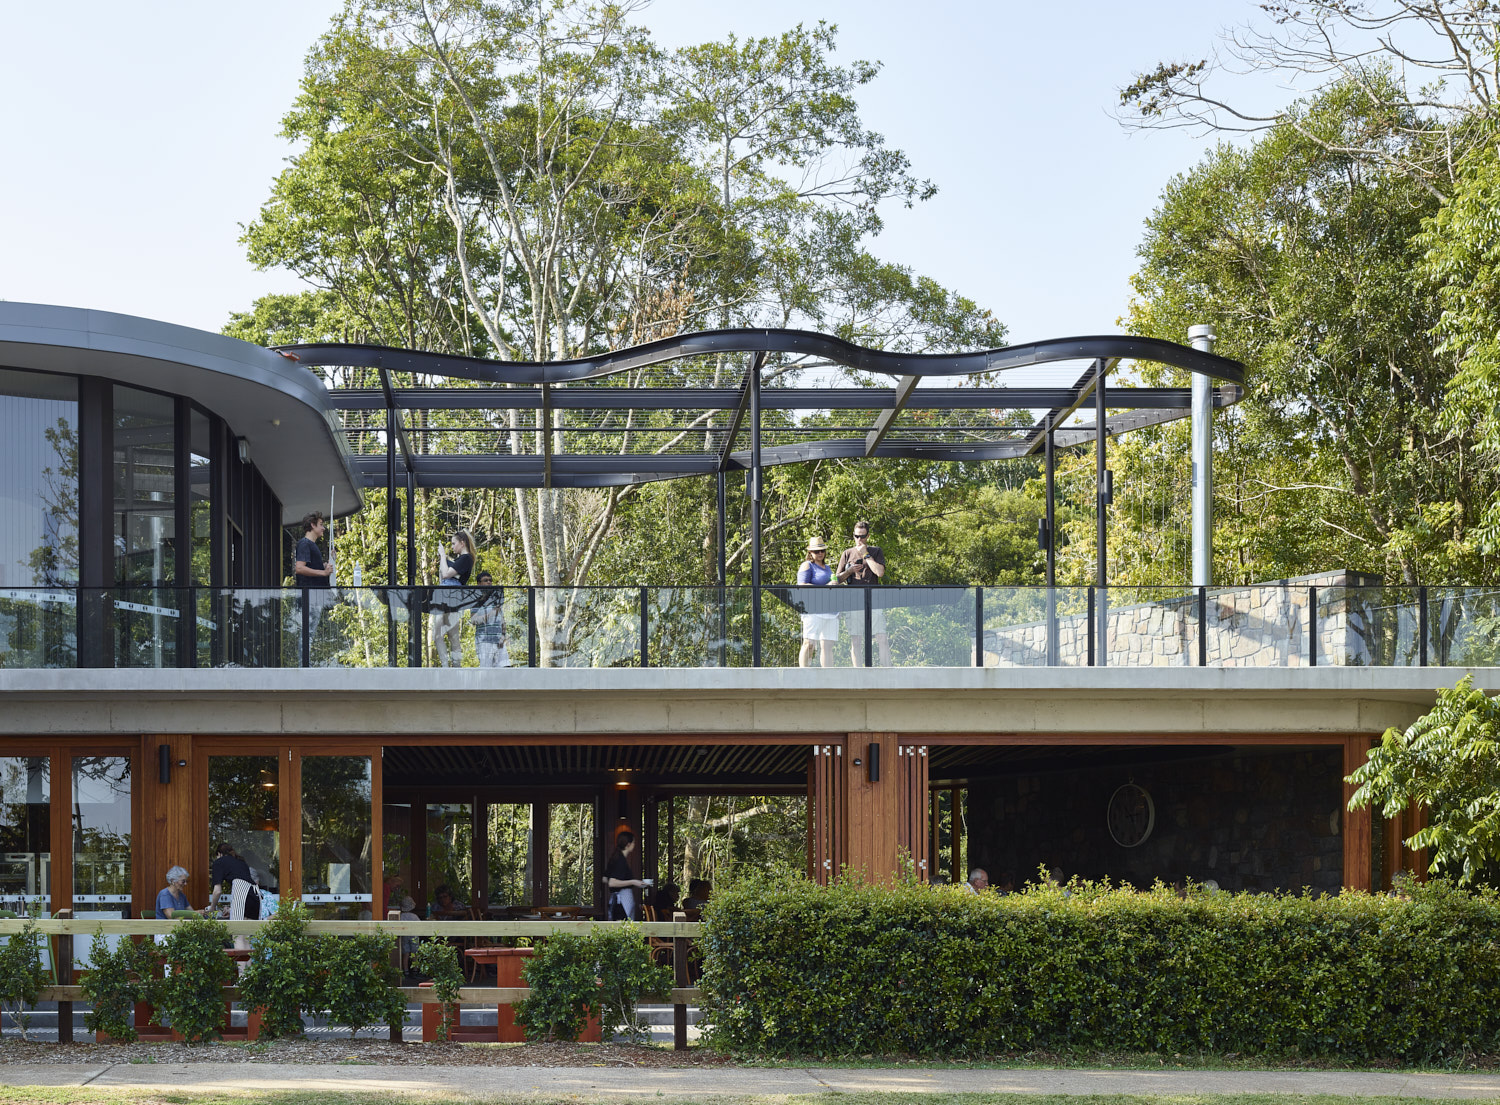 Mary Cairncross Scenic Reserve Cafe (lower level), and viewing deck (upper level)